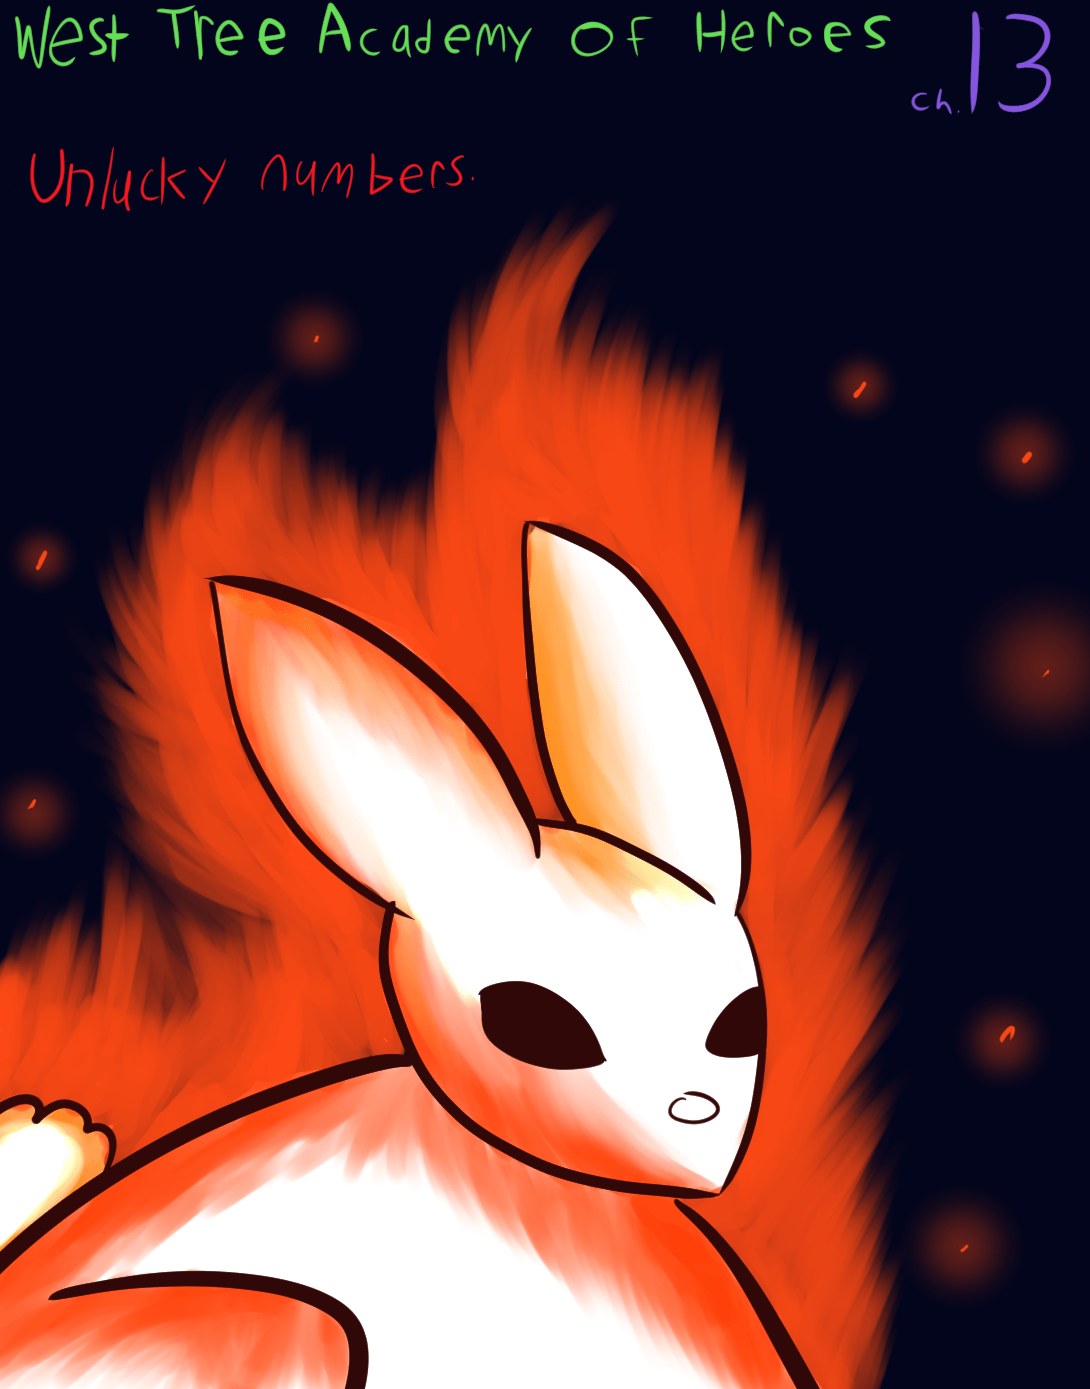 What is the fire rabbit? That will be important later my friend.